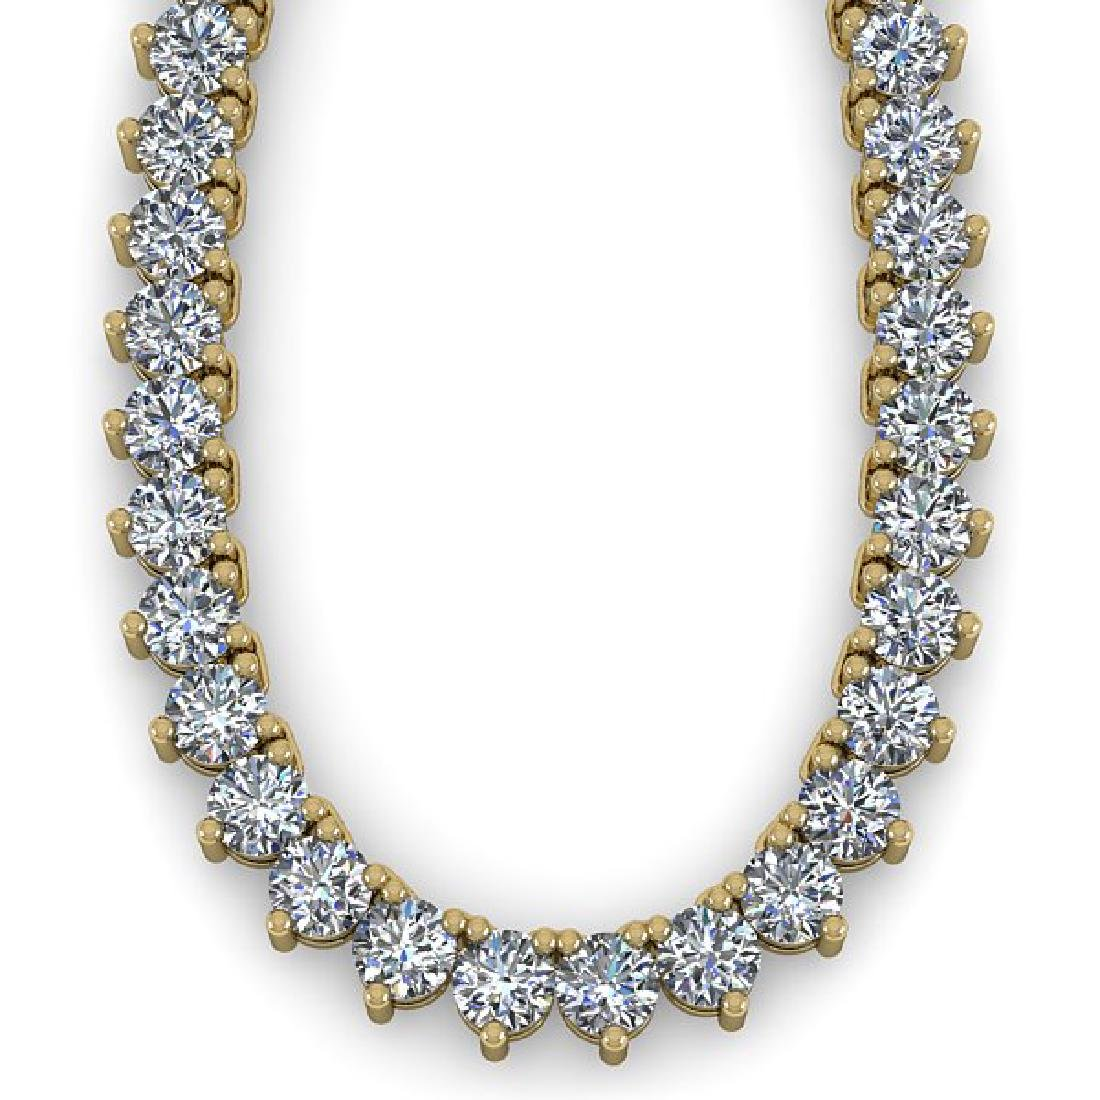 48 CTW Solitaire SI Diamond Necklace 18K Yellow Gold - 2